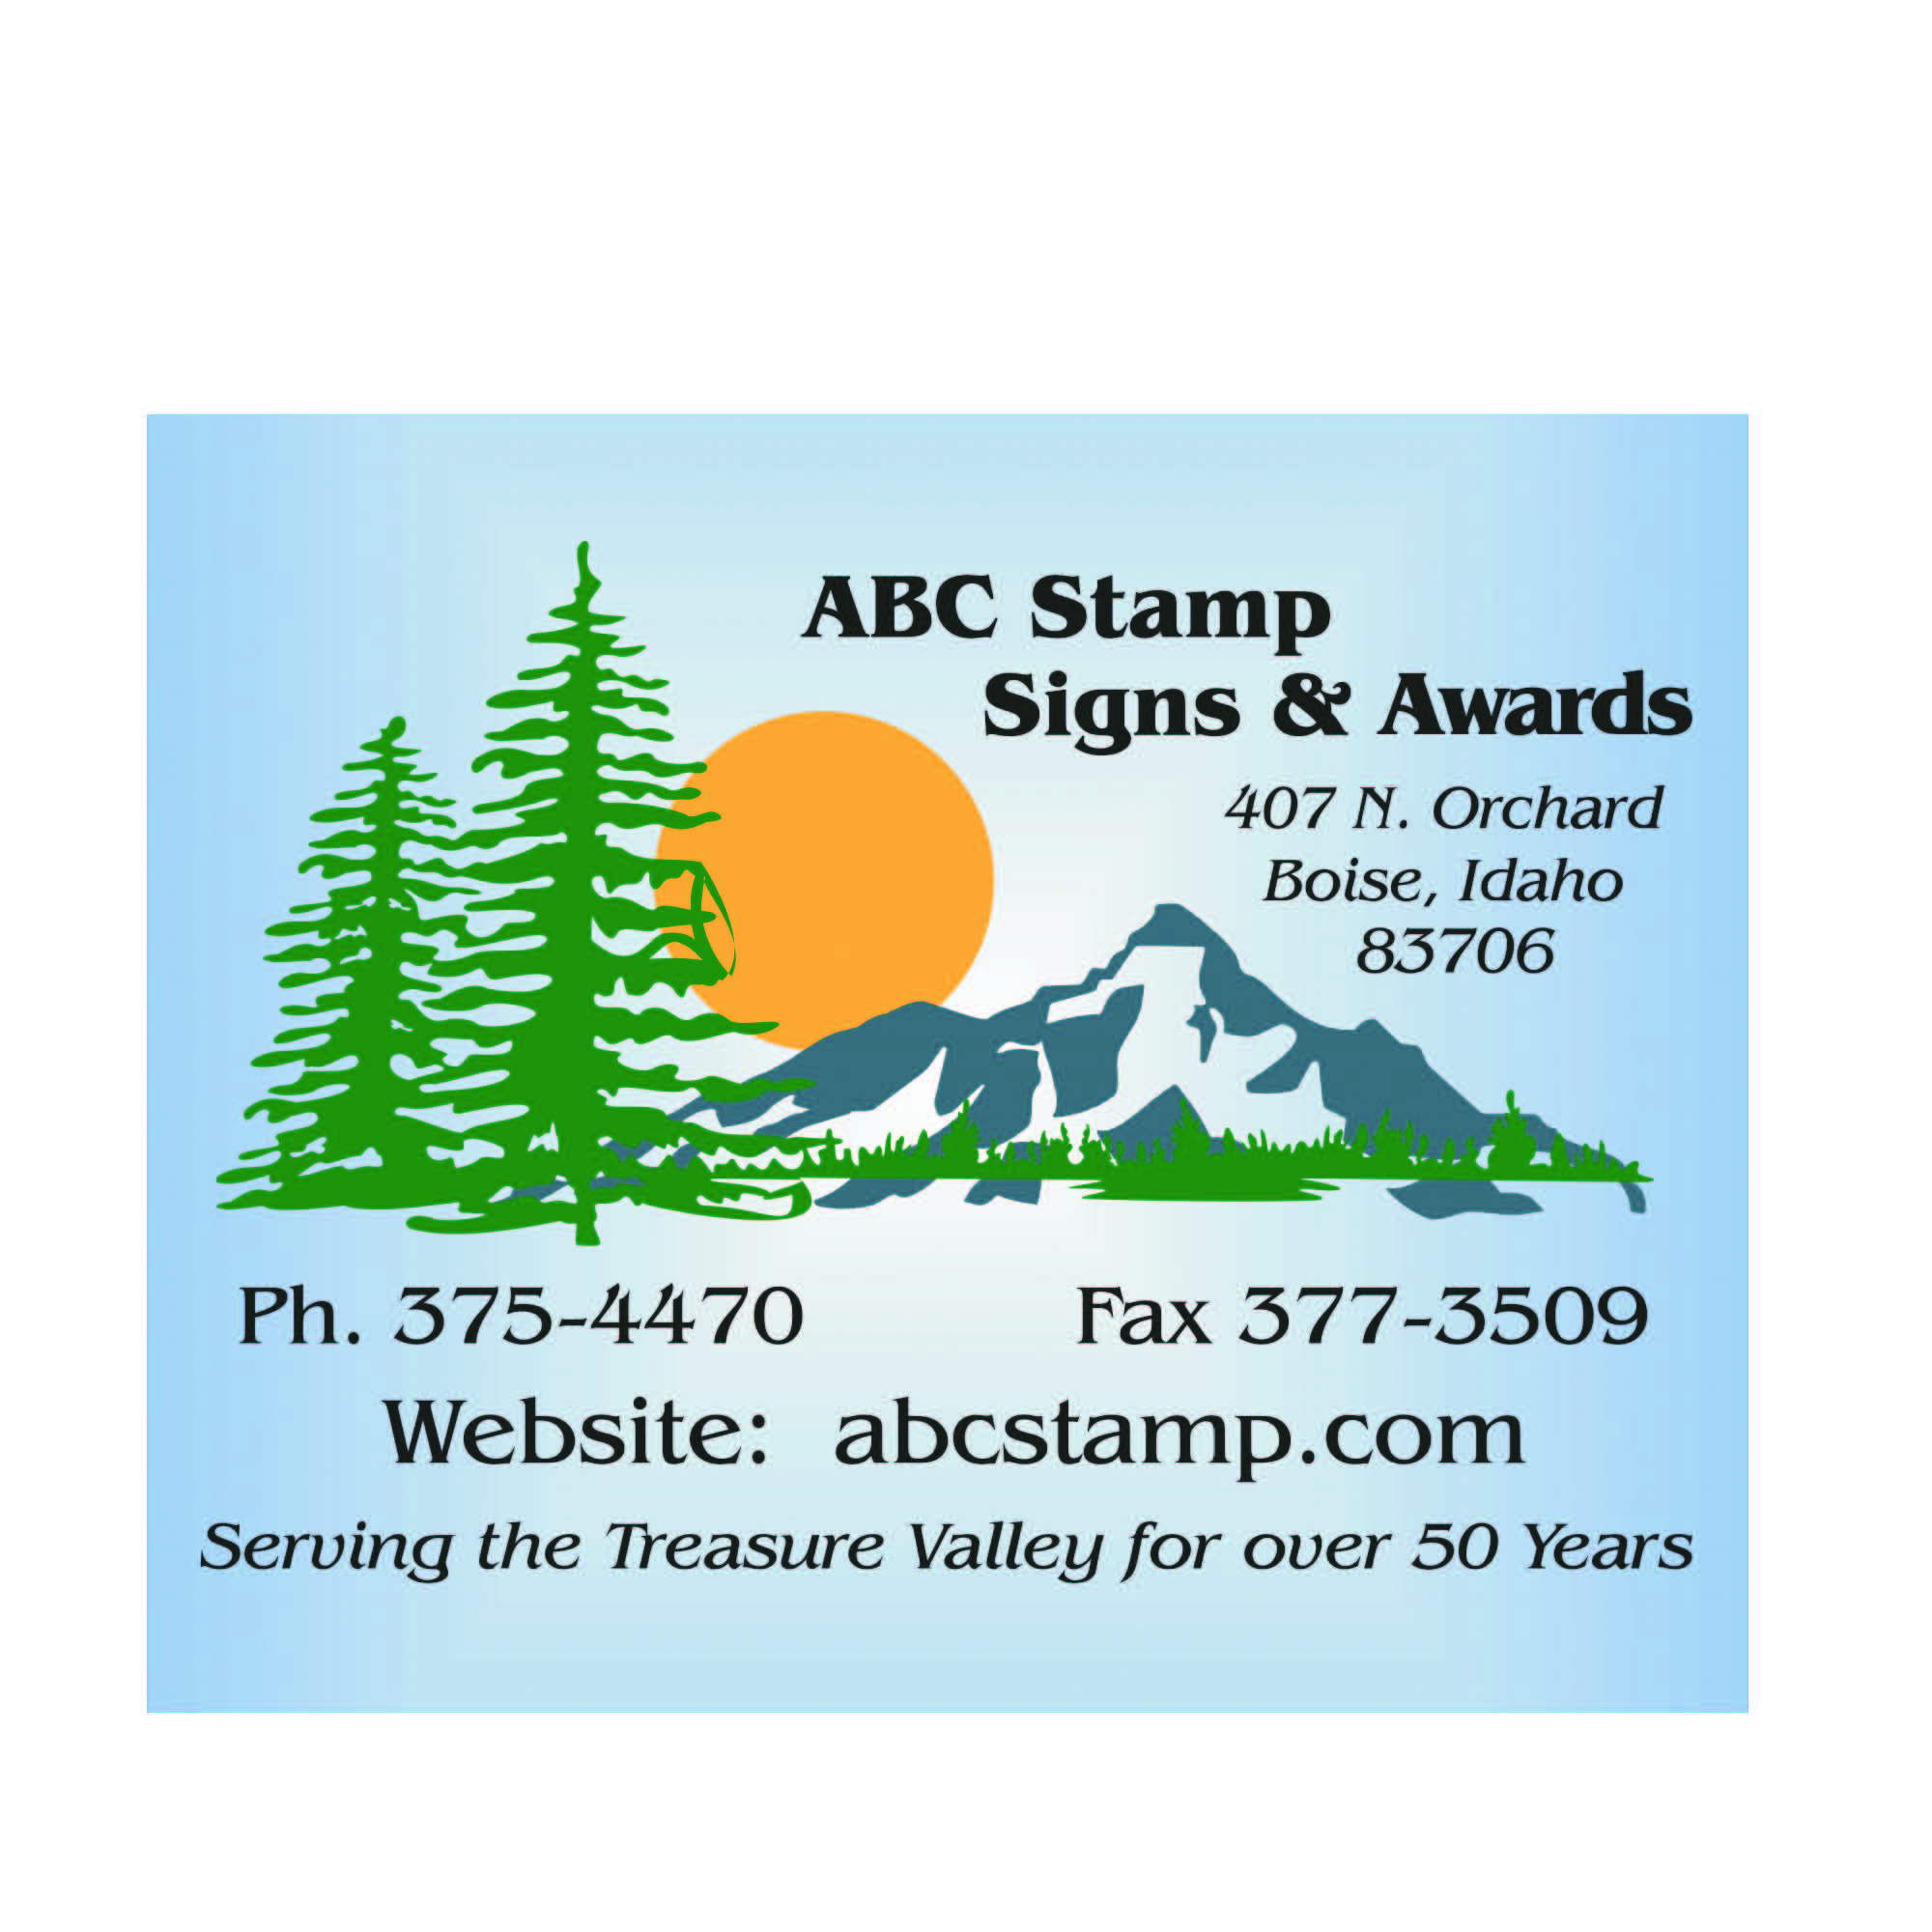 ABC Stamp Company